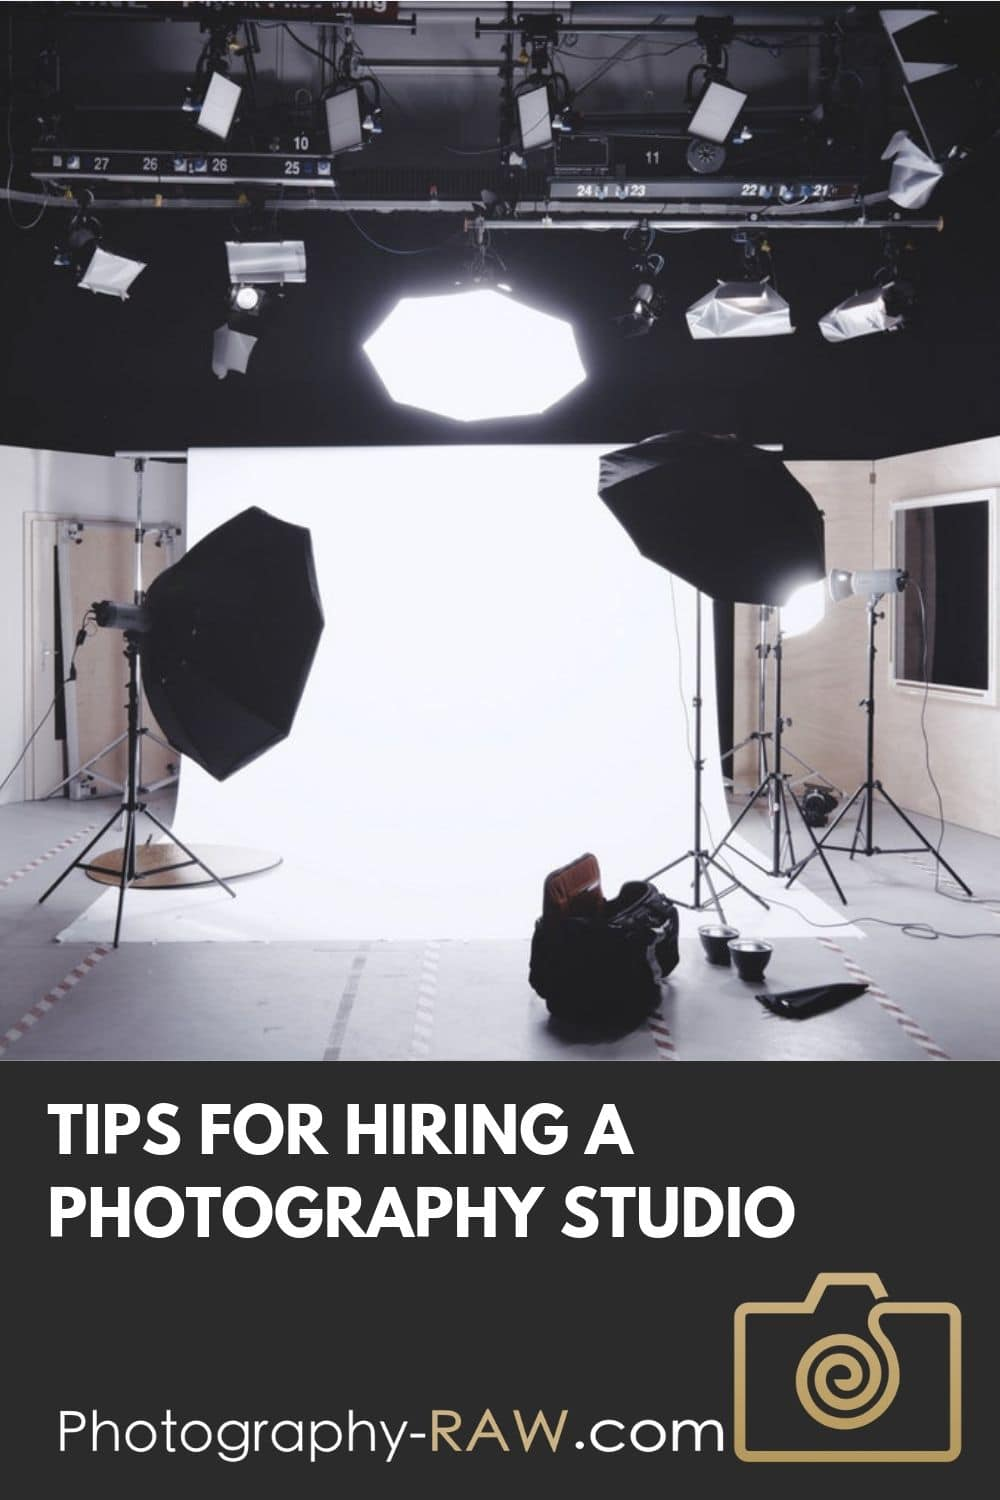 Tips For Hiring a Photography Studio to Scale Your Ambitions